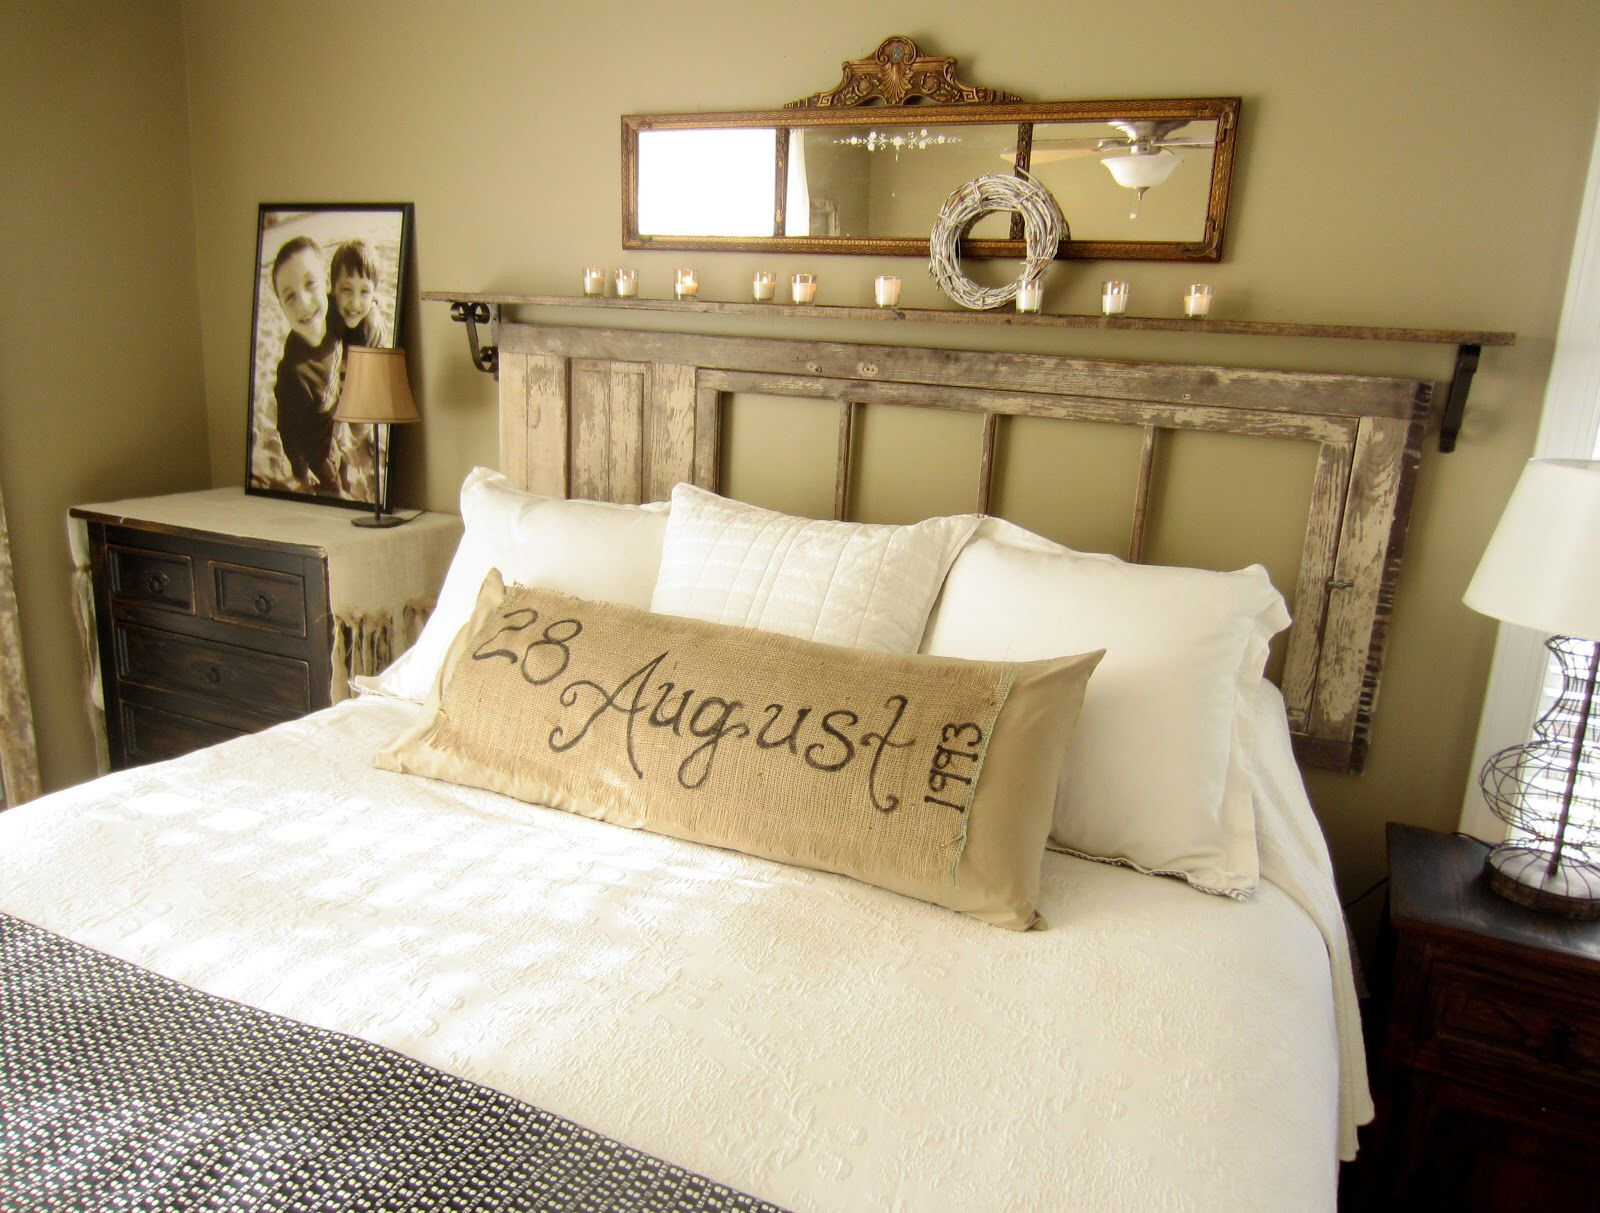 Master Bedroom Neutral Colors image from http://www.inclinterior/wp-content/uploads/2015/06